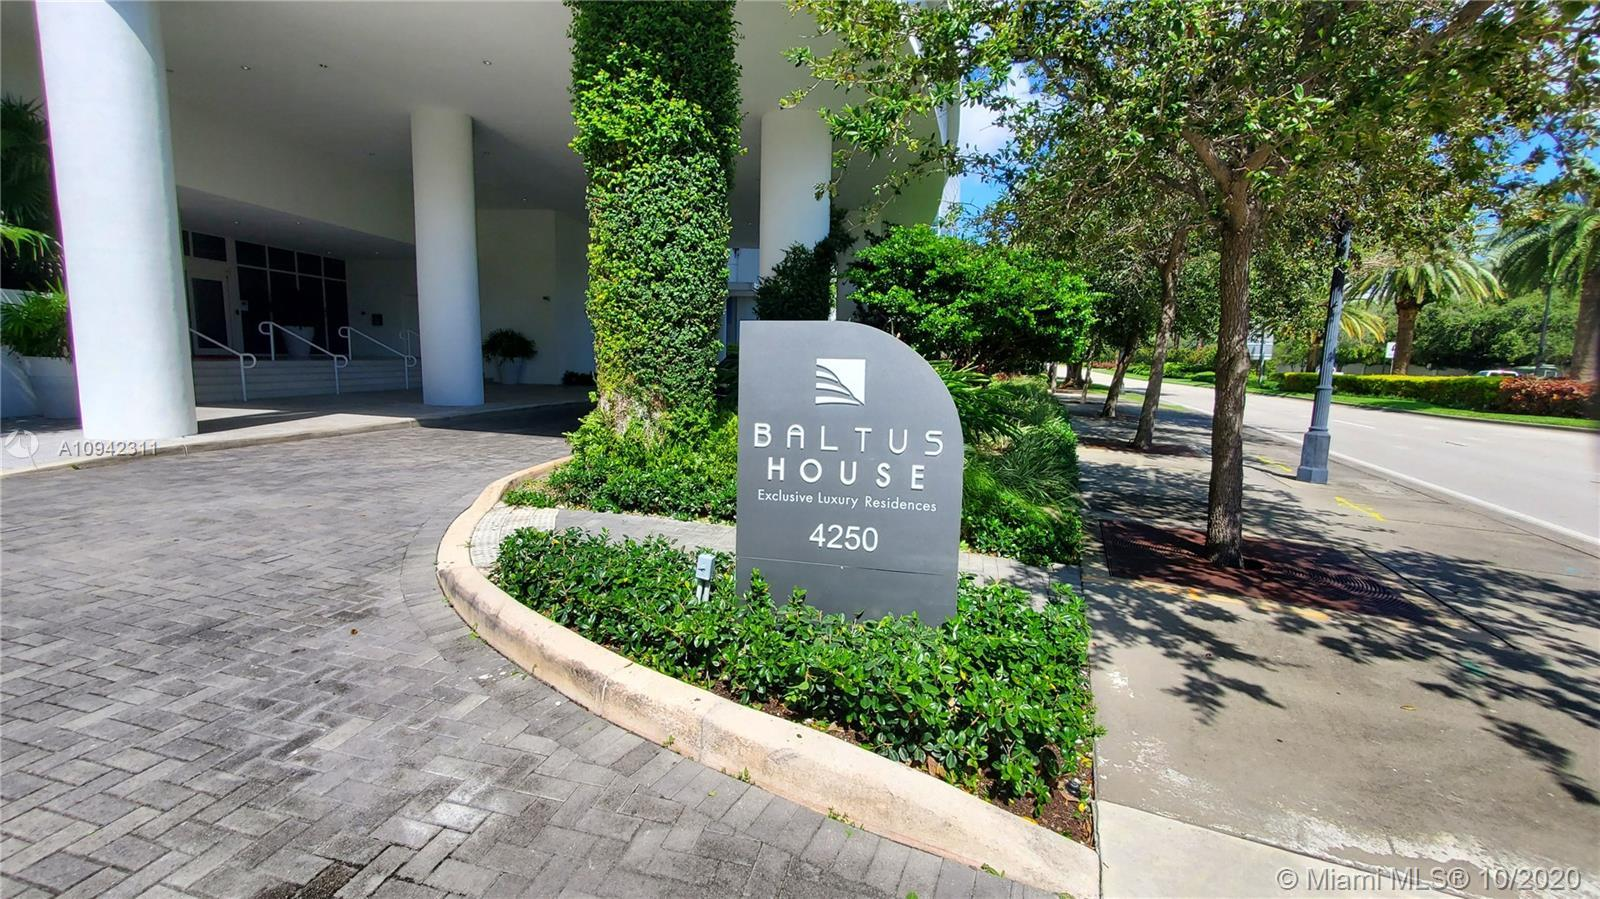 1 bedroom / 1 bathroom apartment at Baltus House condo in the Design District. Enjoy state of the ar